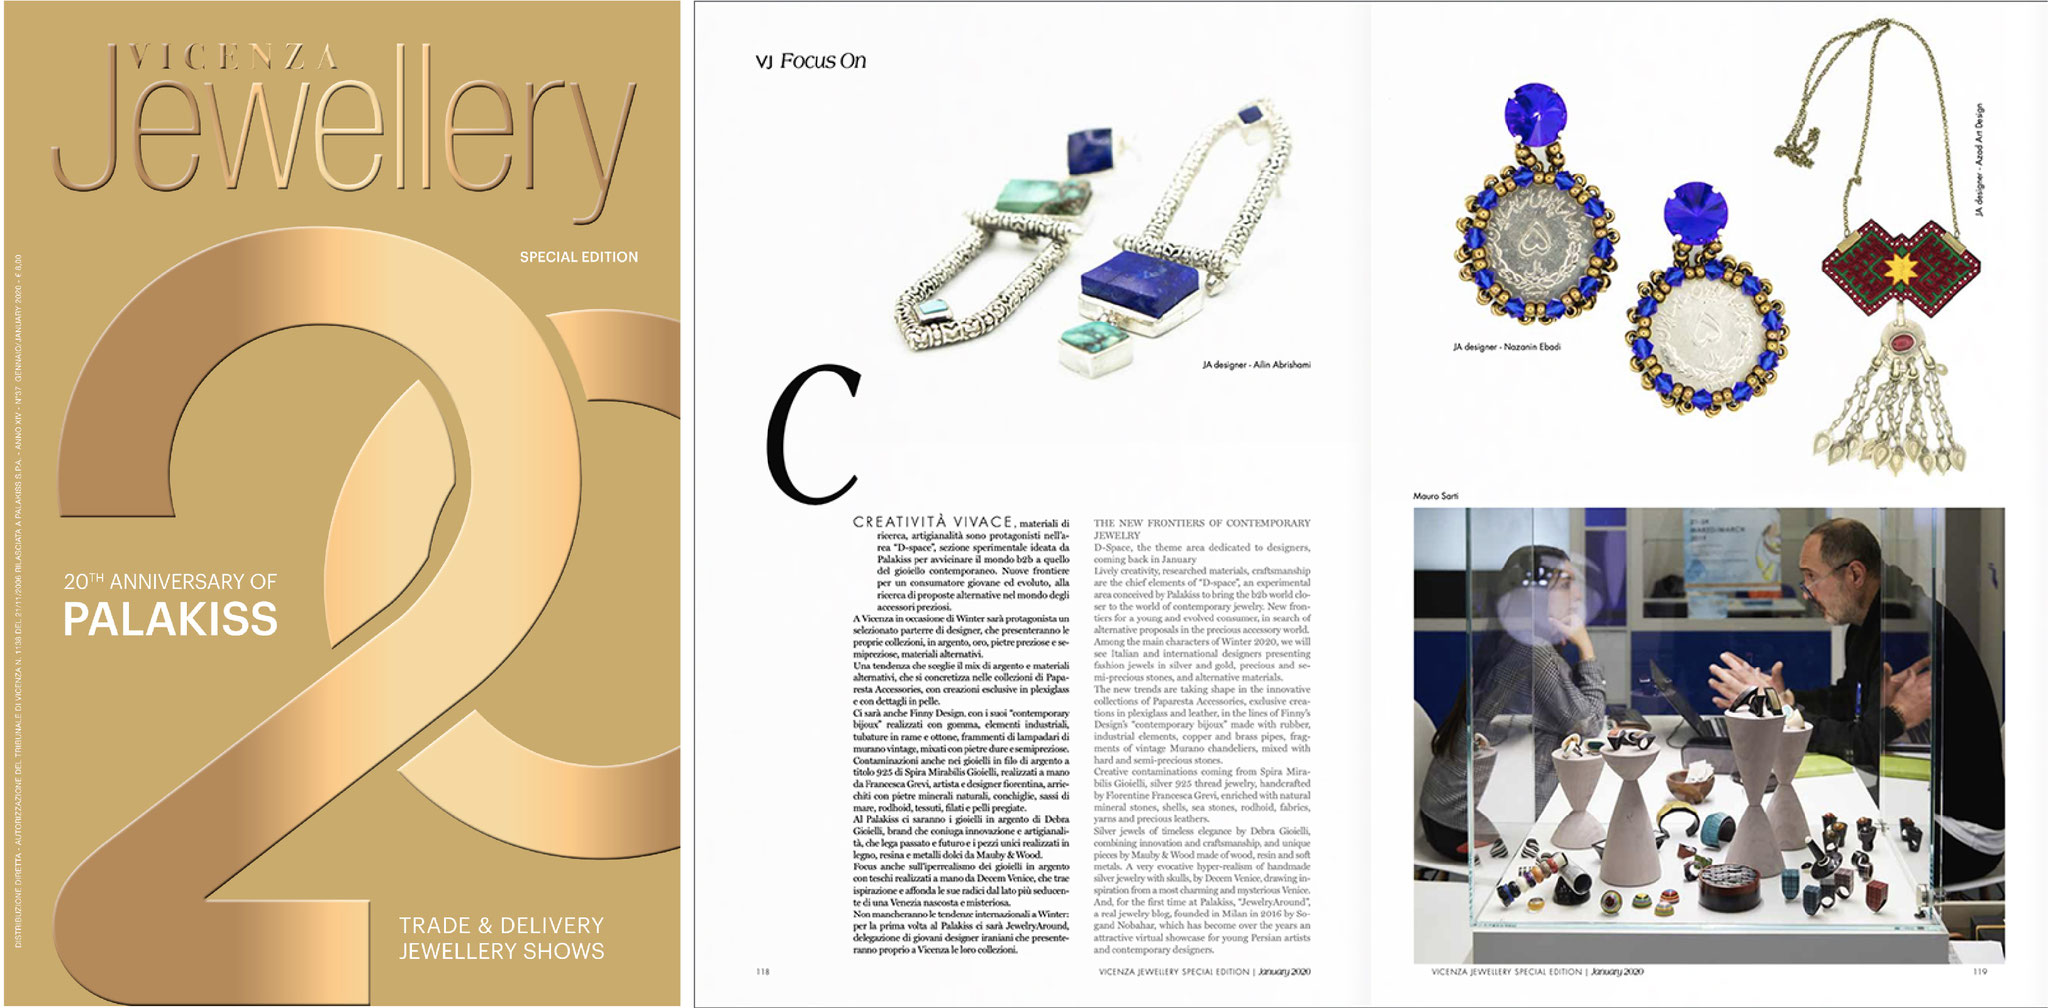 Jewelryaround on VicenzaJewelry magazine No.37 January/February 2020